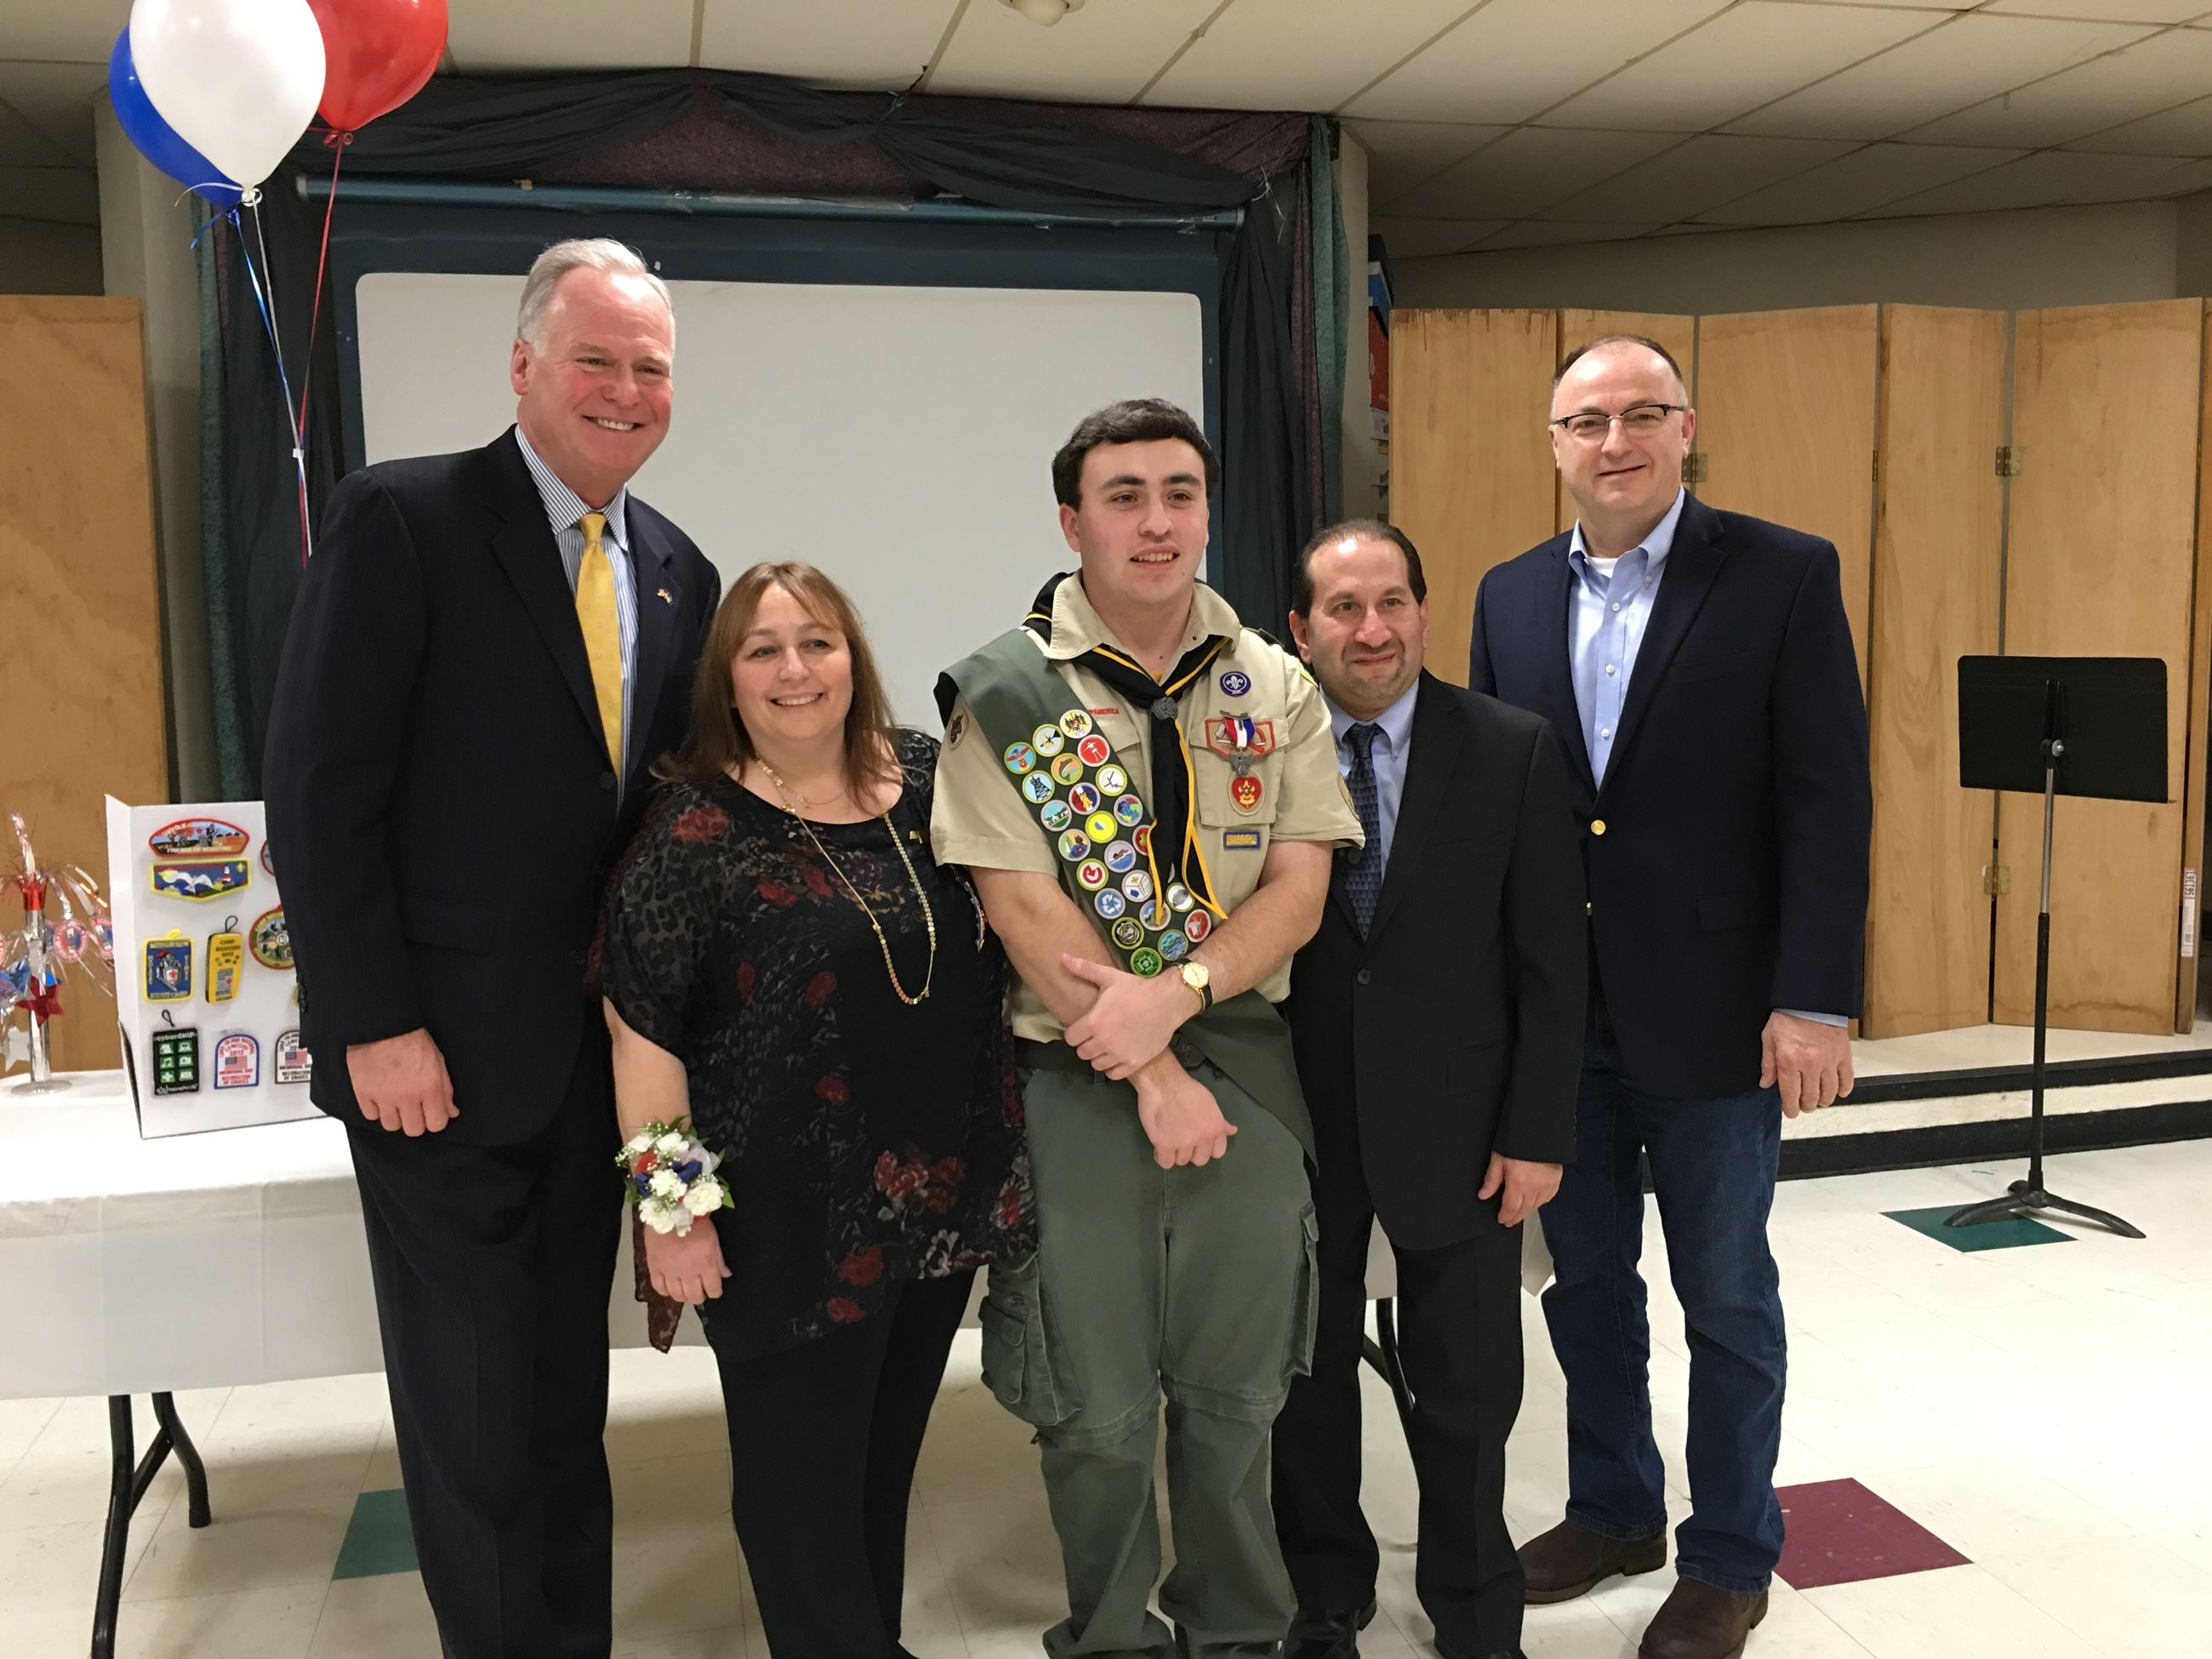 Suffolk County Legislator Rob Trotta congratulated Eagle Scout Josh Witt